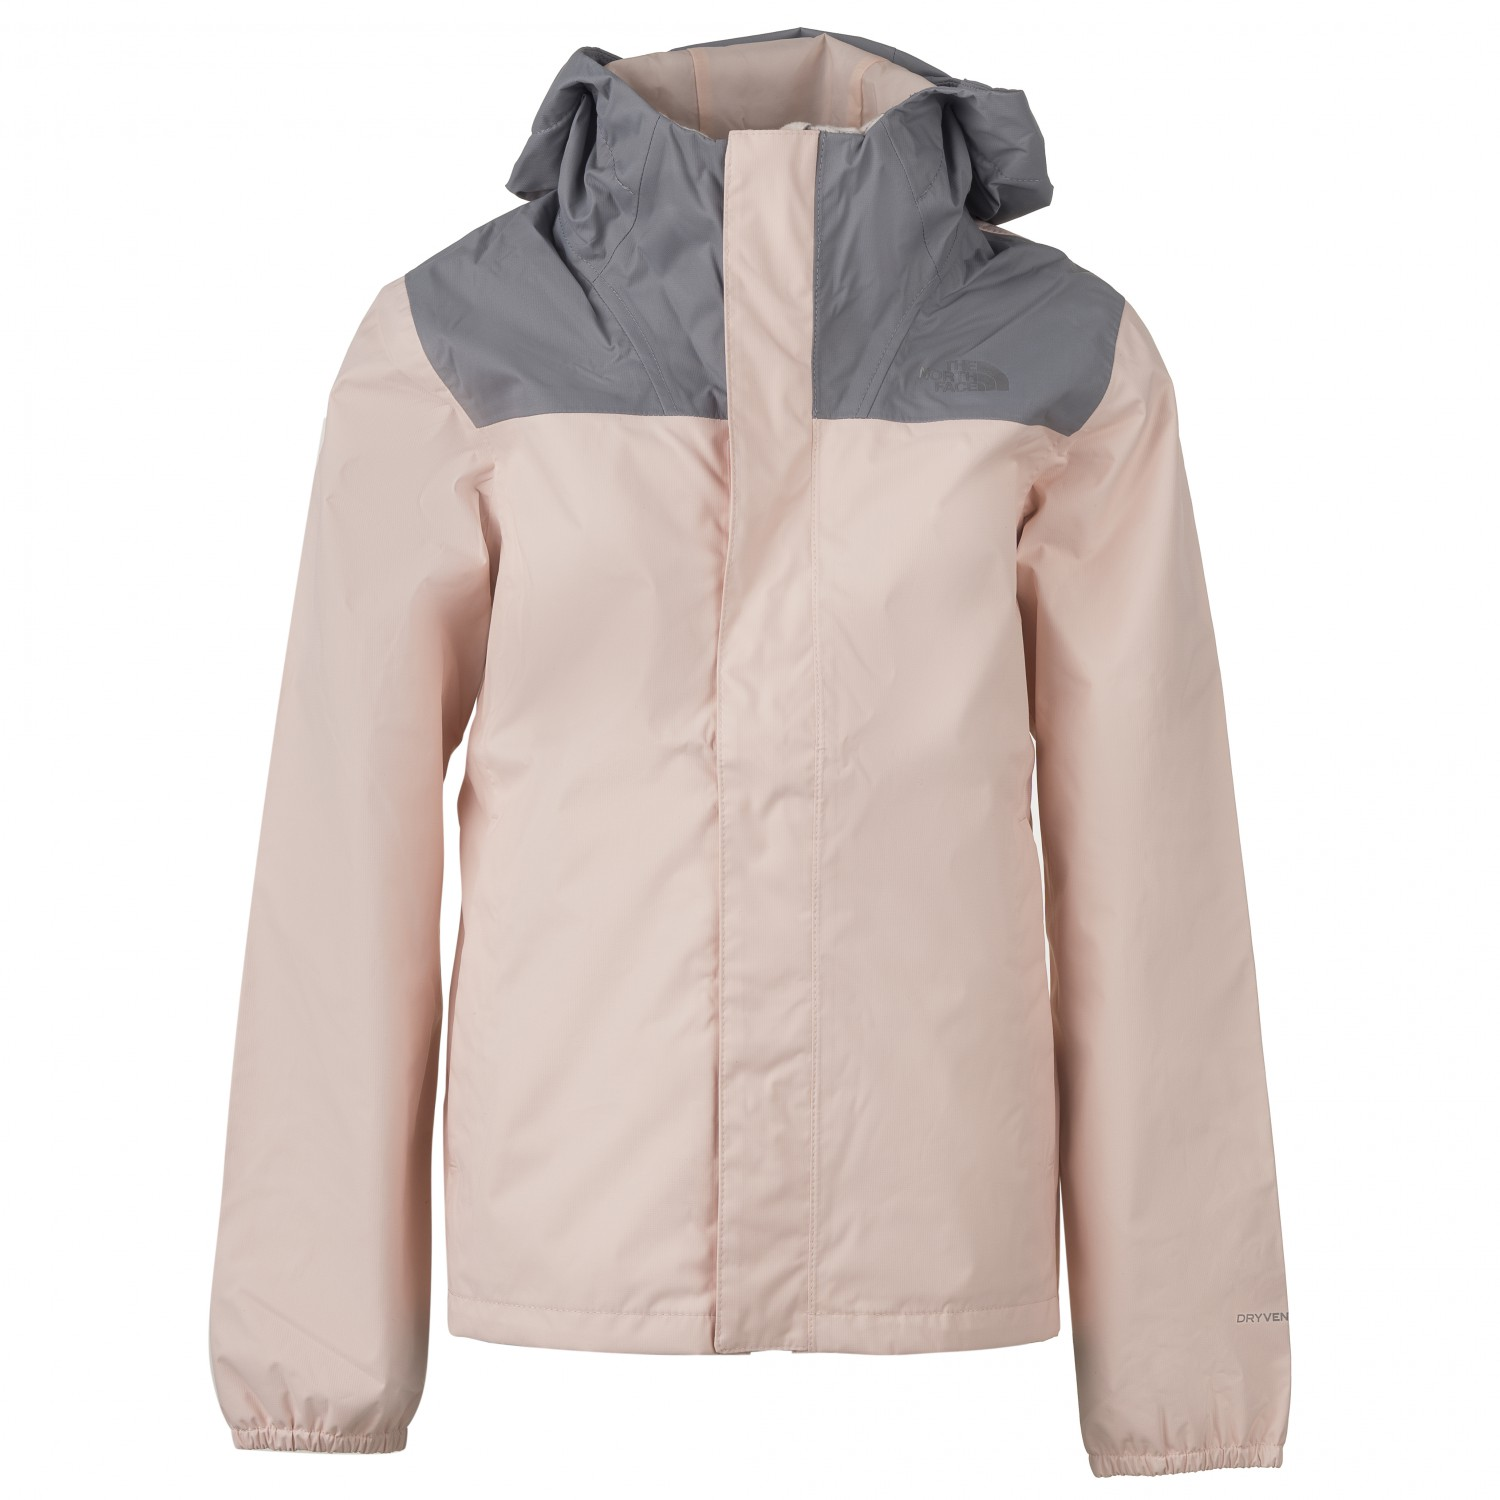 ae74d4dca The North Face Girl'S Resolve Reflective - Waterproof Jacket Kids ...